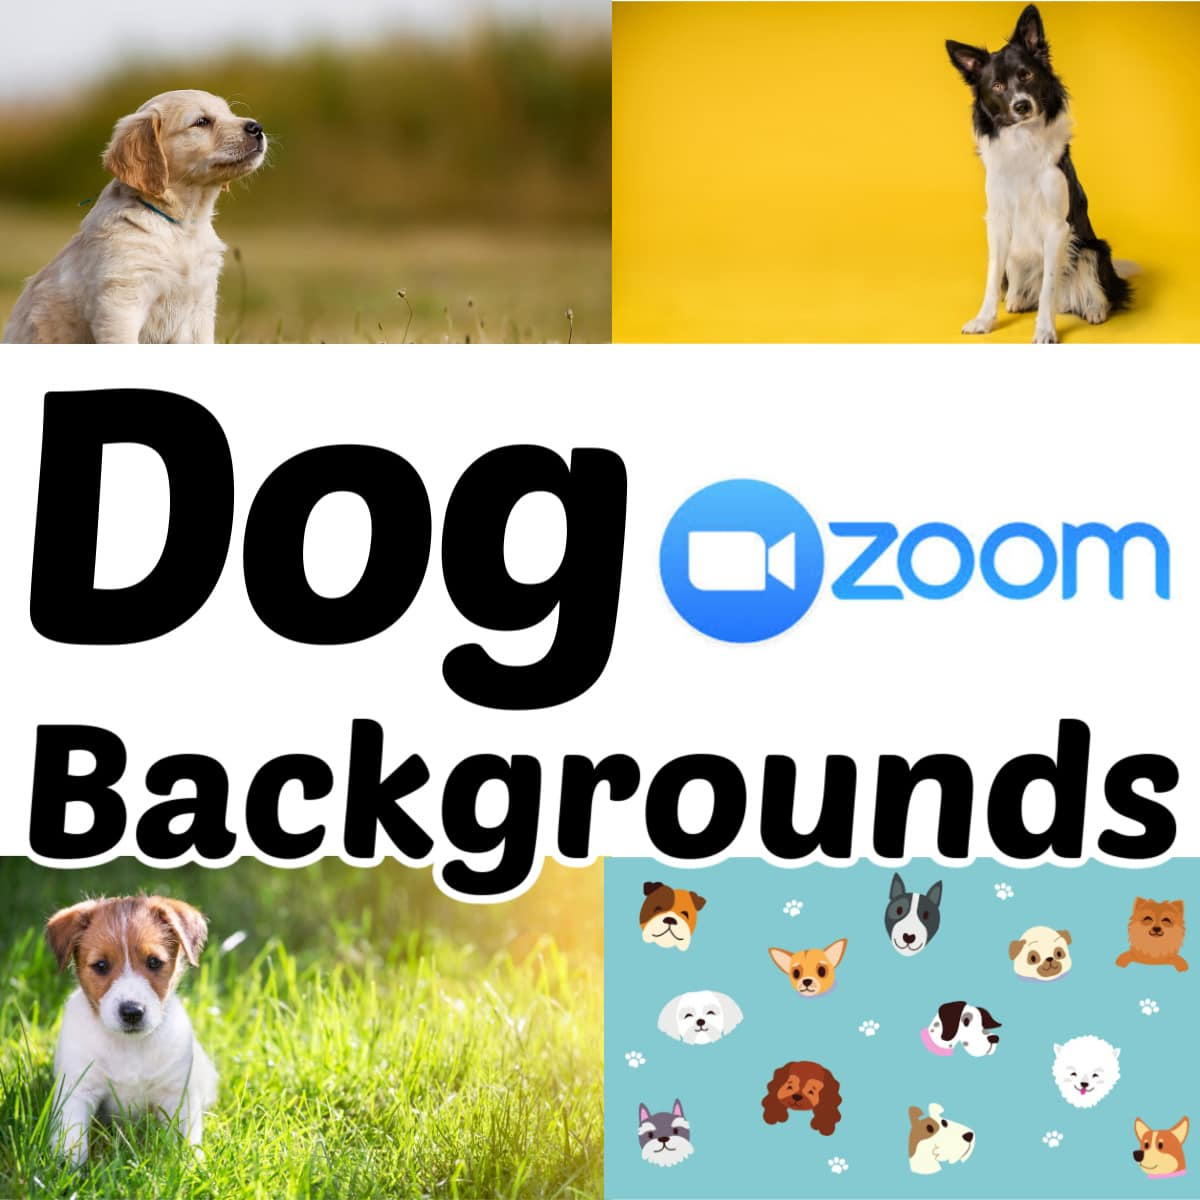 Dog Zoom virtual backgrounds